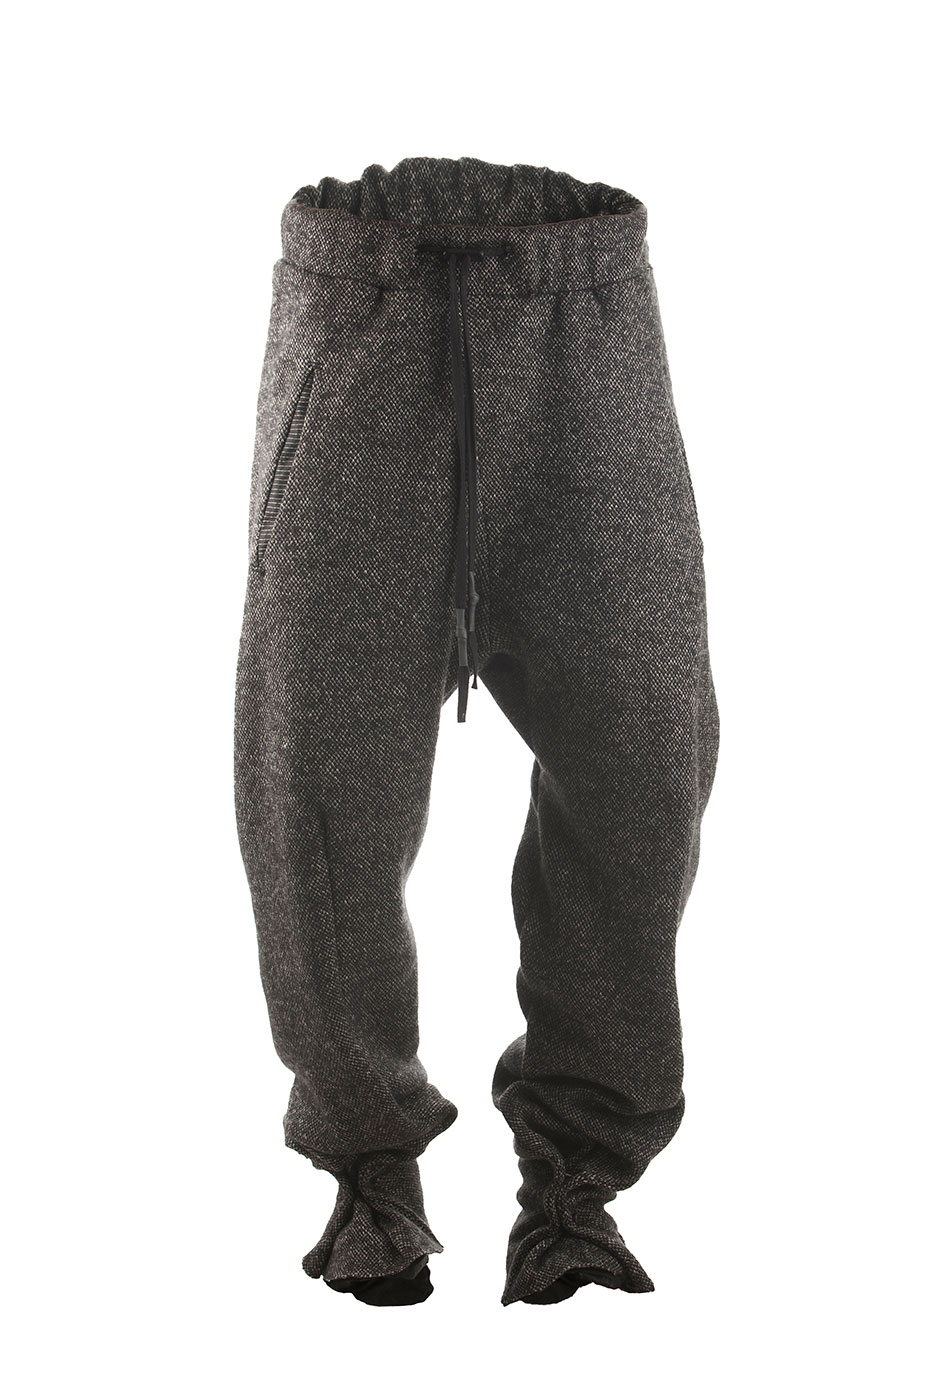 Hose Braun Grau Low Crotch